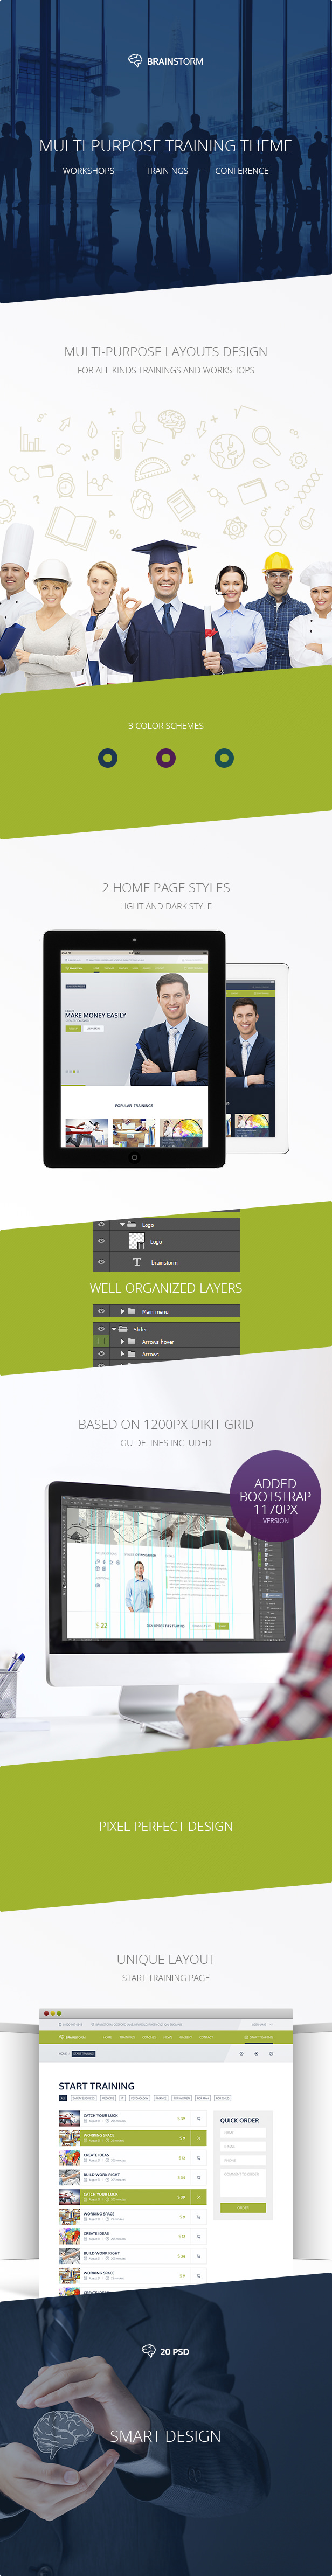 BrainStorm — Multipurpose Event, Training, Workshop PSD Template - 2